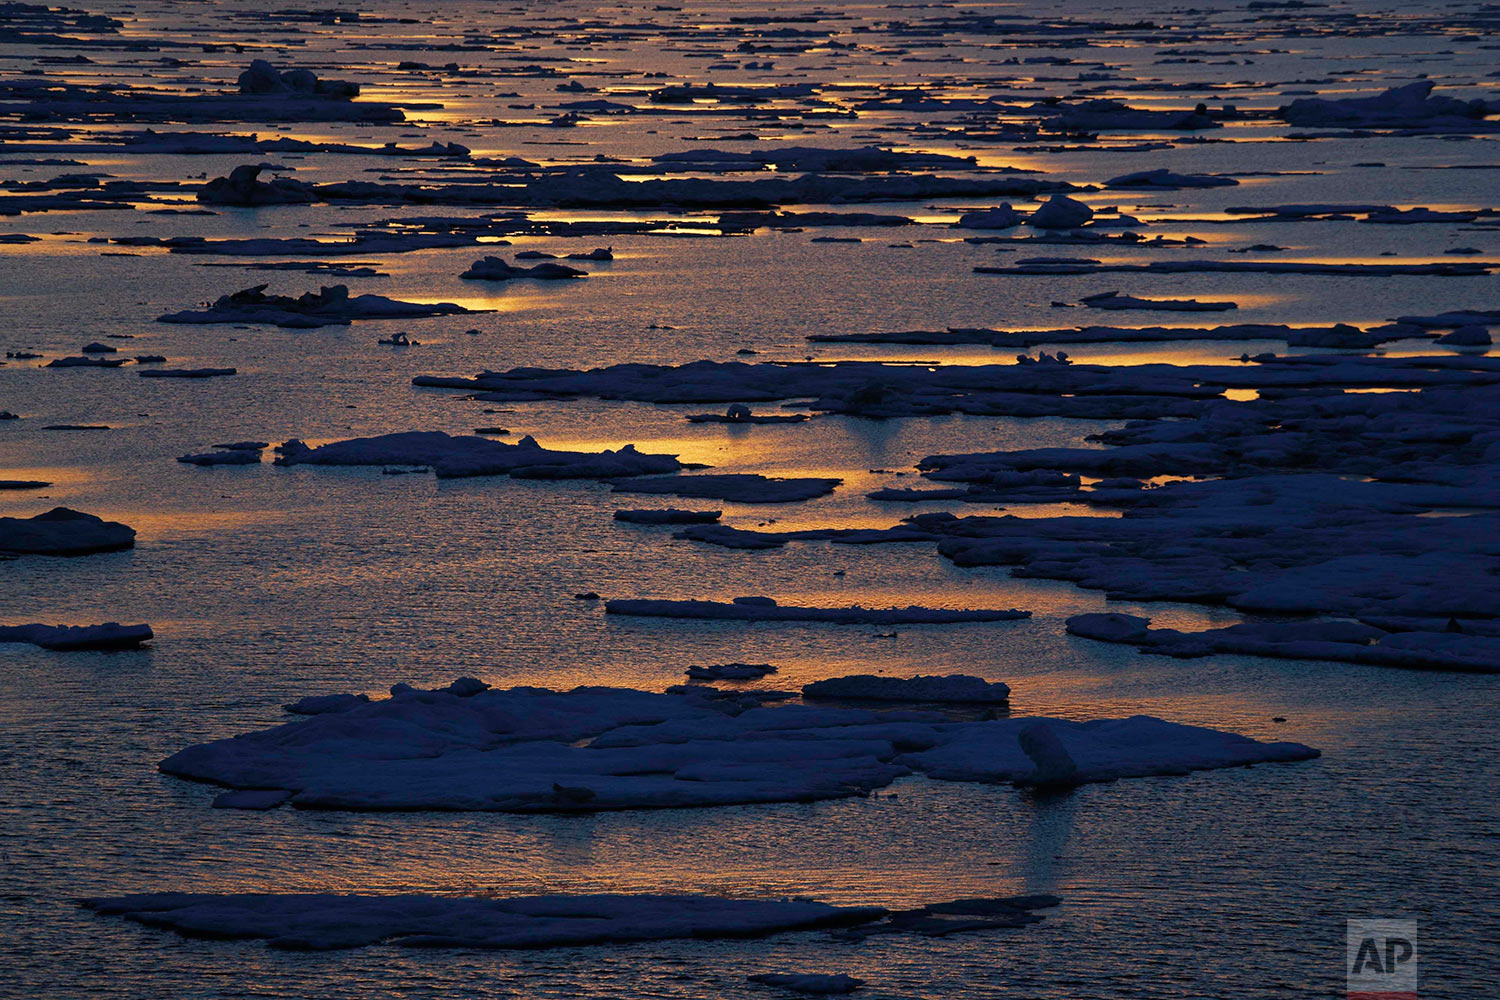 The sun sets over sea ice floating on the Victoria Strait along the Northwest Passage in the Canadian Arctic Archipelago, Friday, July 21, 2017. Sea ice forms when the top layer of water reaches freezing point, usually around the start of October. As temperatures continue to fall this first-year ice grows downward until it is several feet thick. If the ice survives the following summer melt it becomes second-year ice. Another cycle and it becomes multi-year ice _ which is the toughest kind. (AP Photo/David Goldman)